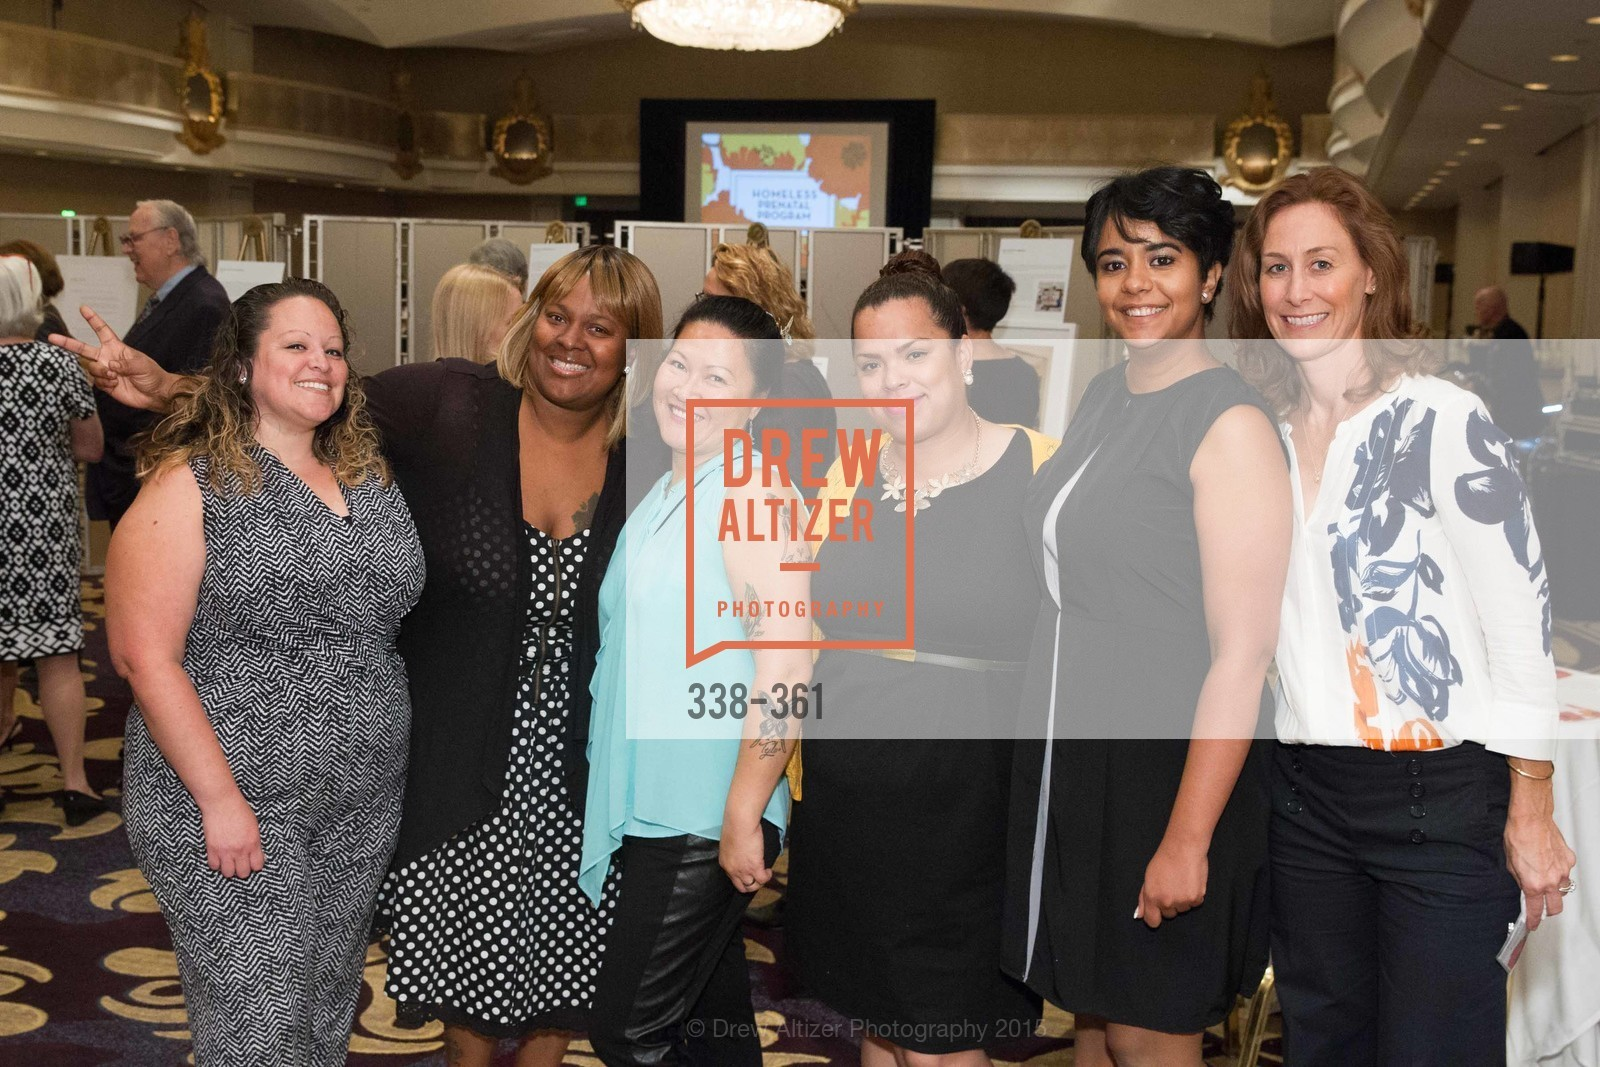 Christina Hernandez, Maisha Jones, Sophia Messina, Darlene Cicana, Catherine Castro, Victoria Camilio, Homeless Prenatal Programs Annual Luncheon, Fairmont Hotel, October 9th, 2015,Drew Altizer, Drew Altizer Photography, full-service agency, private events, San Francisco photographer, photographer california